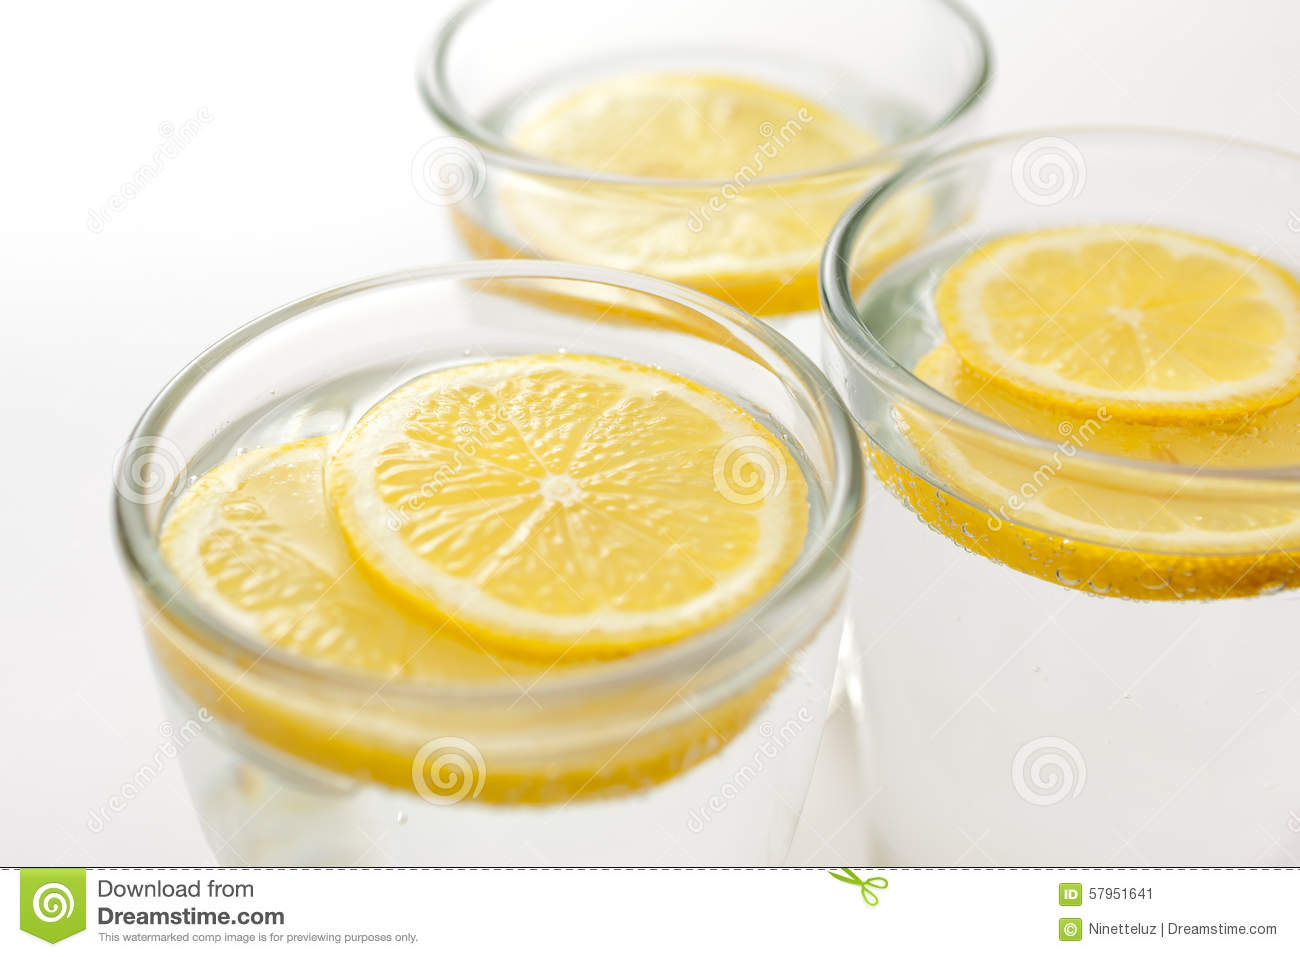 sliced-lemon-with-water